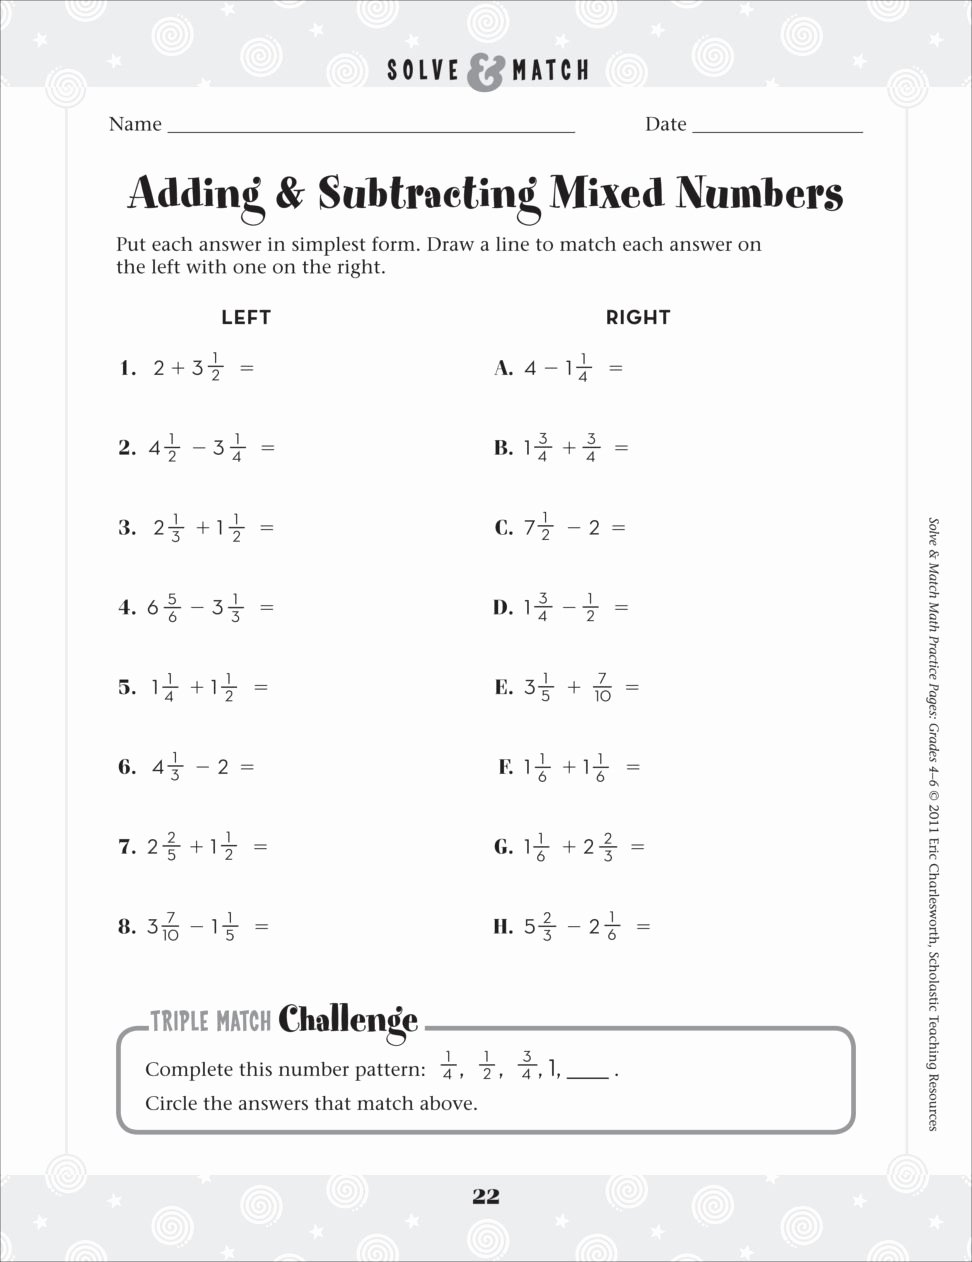 Adding Mixed Numbers Worksheet Fresh Multiplying Fractions and Mixed Numbers Worksheets